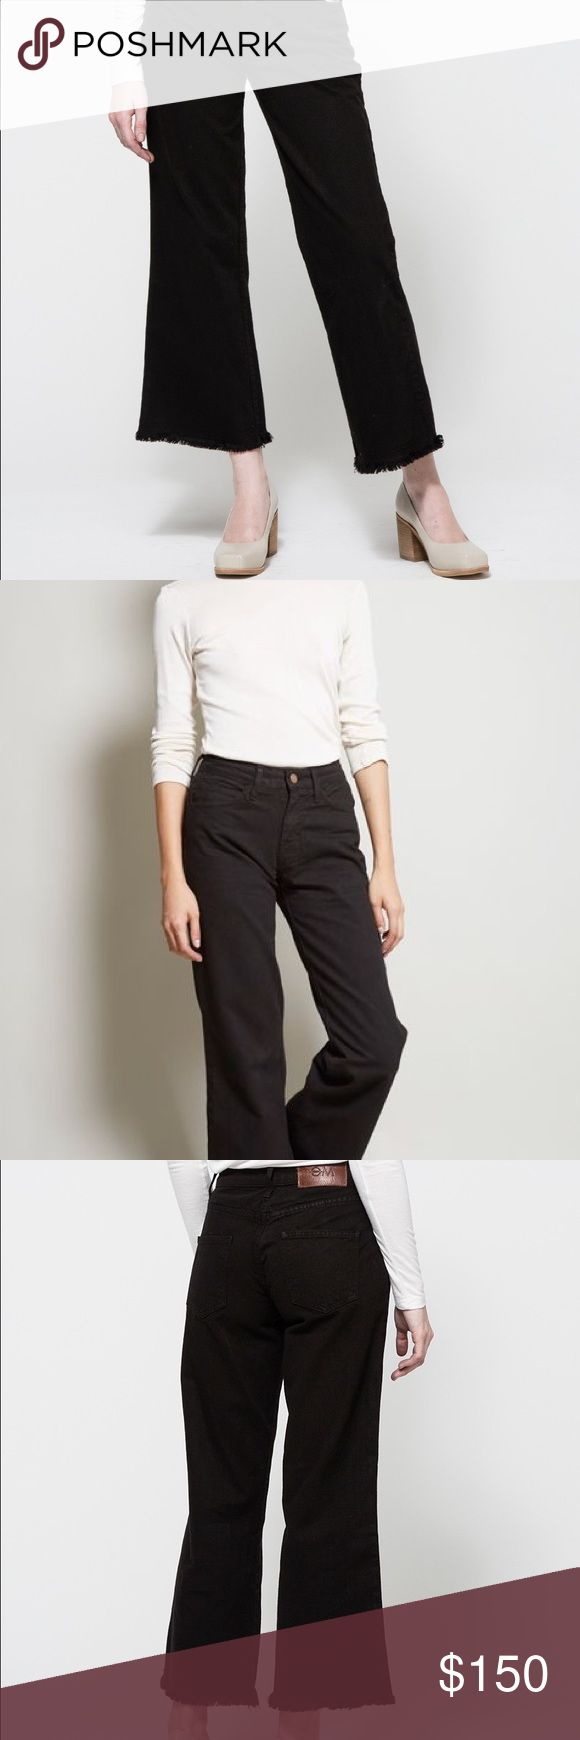 OBJECTS WITHOUT MEANING FLARE JEANS The Flare Jean in black. 5 pocket non-stretch denim with a mid-rise fit. Wide, cropped leg with a frayed hem. Button and zipper front closure. 100% Cotton. Machine wash separately, tumble dry low. Made in USA. Reminds me of the Everlane style pants Everlane Pants Wide Leg